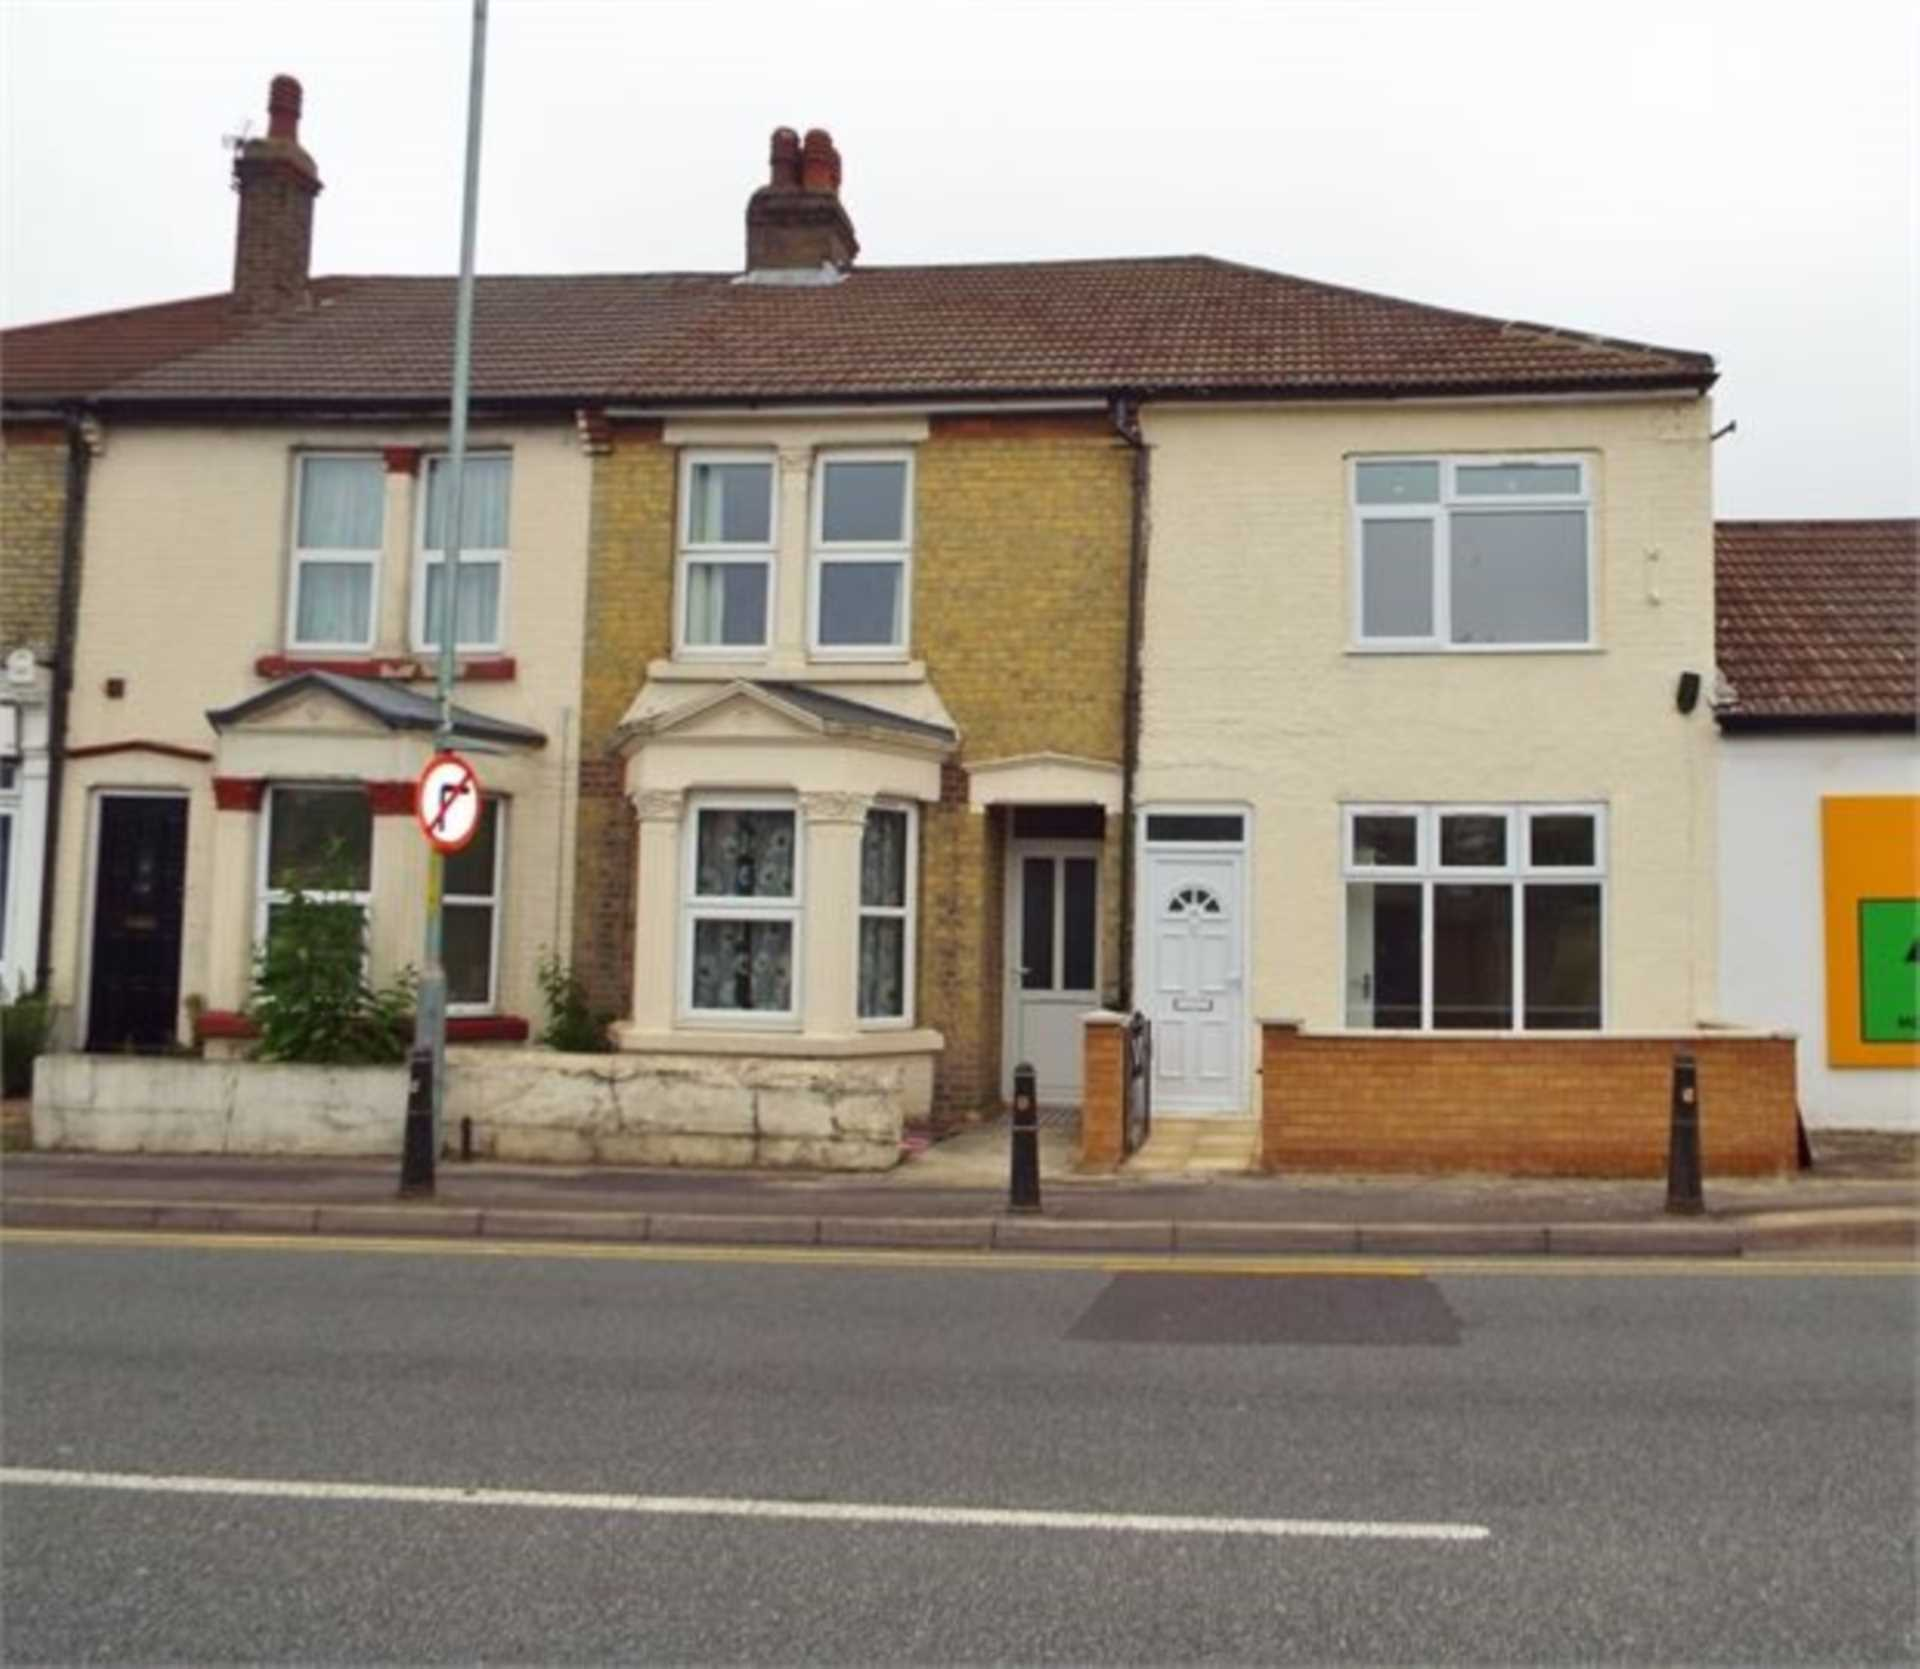 3 Bedroom House For Sale Canterbury Street Gillingham